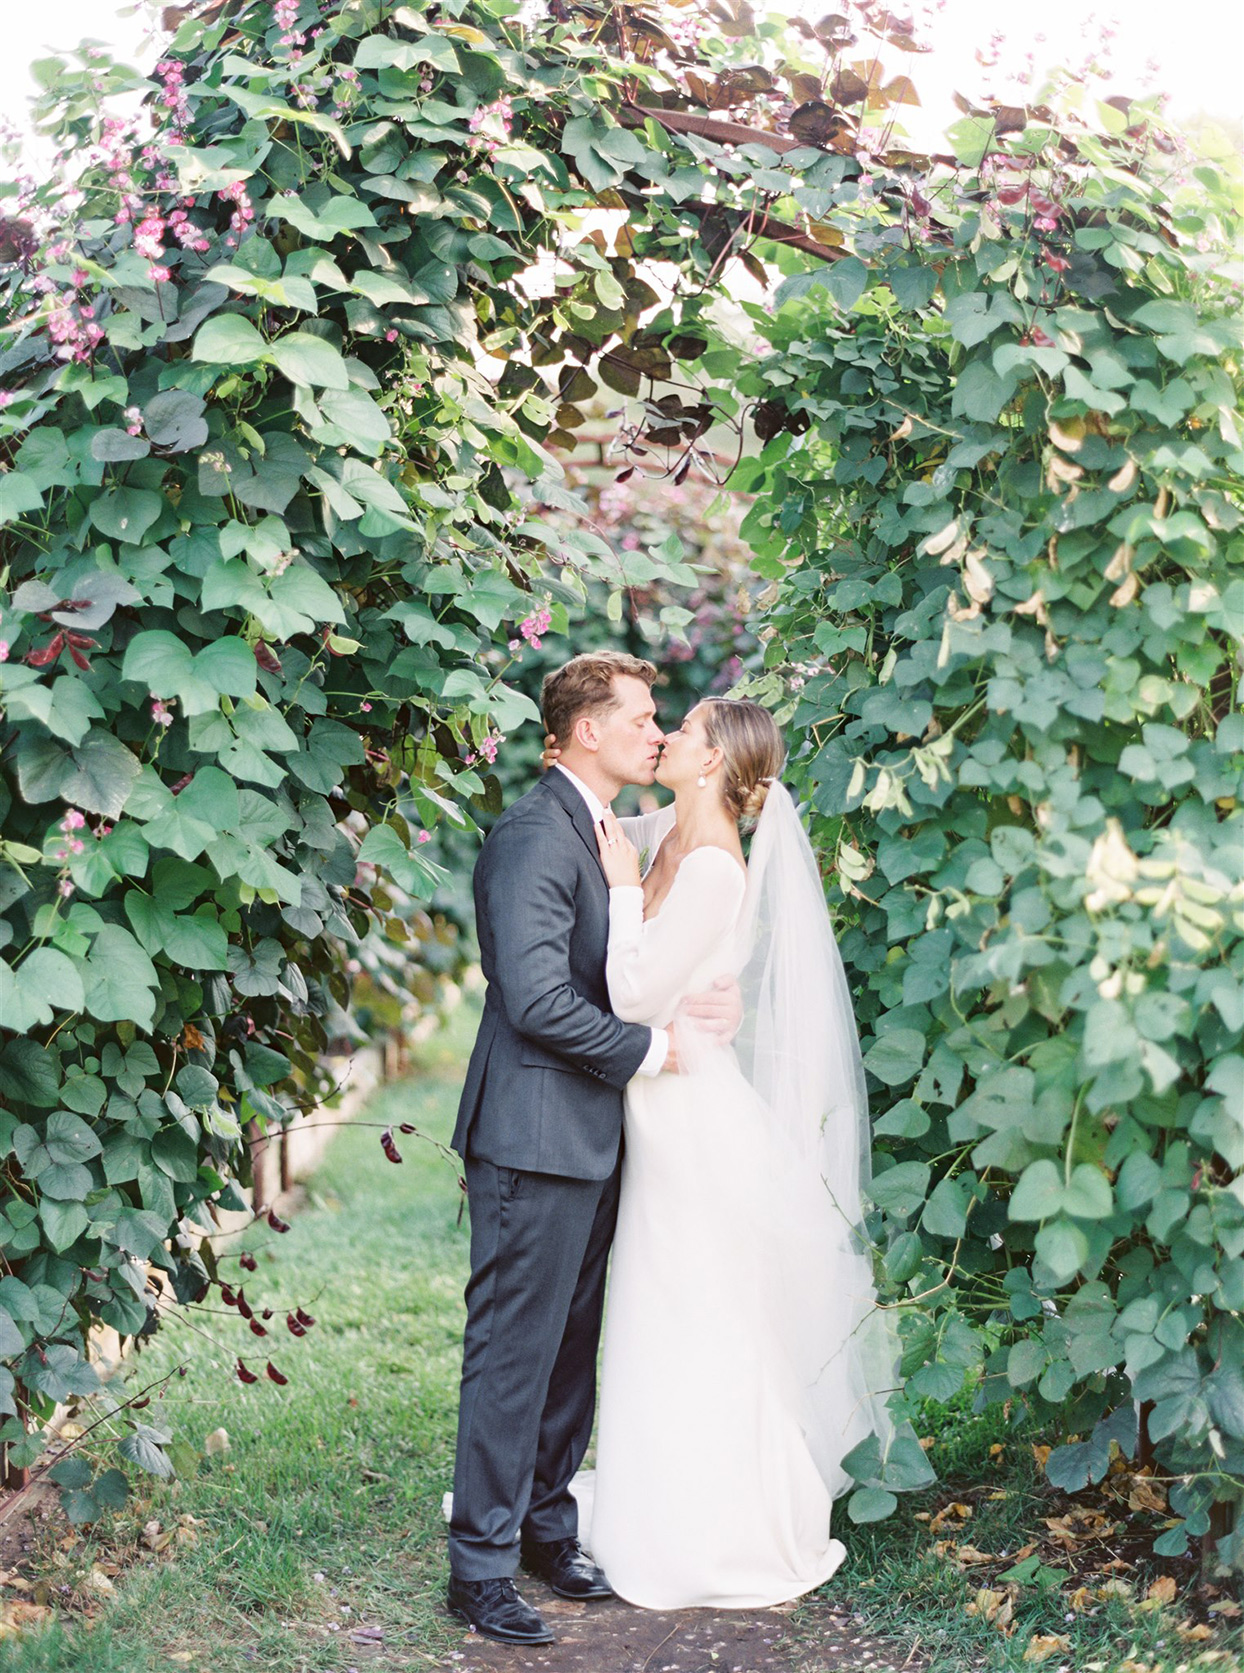 samantha cody wedding couple kissing under archway of greenery